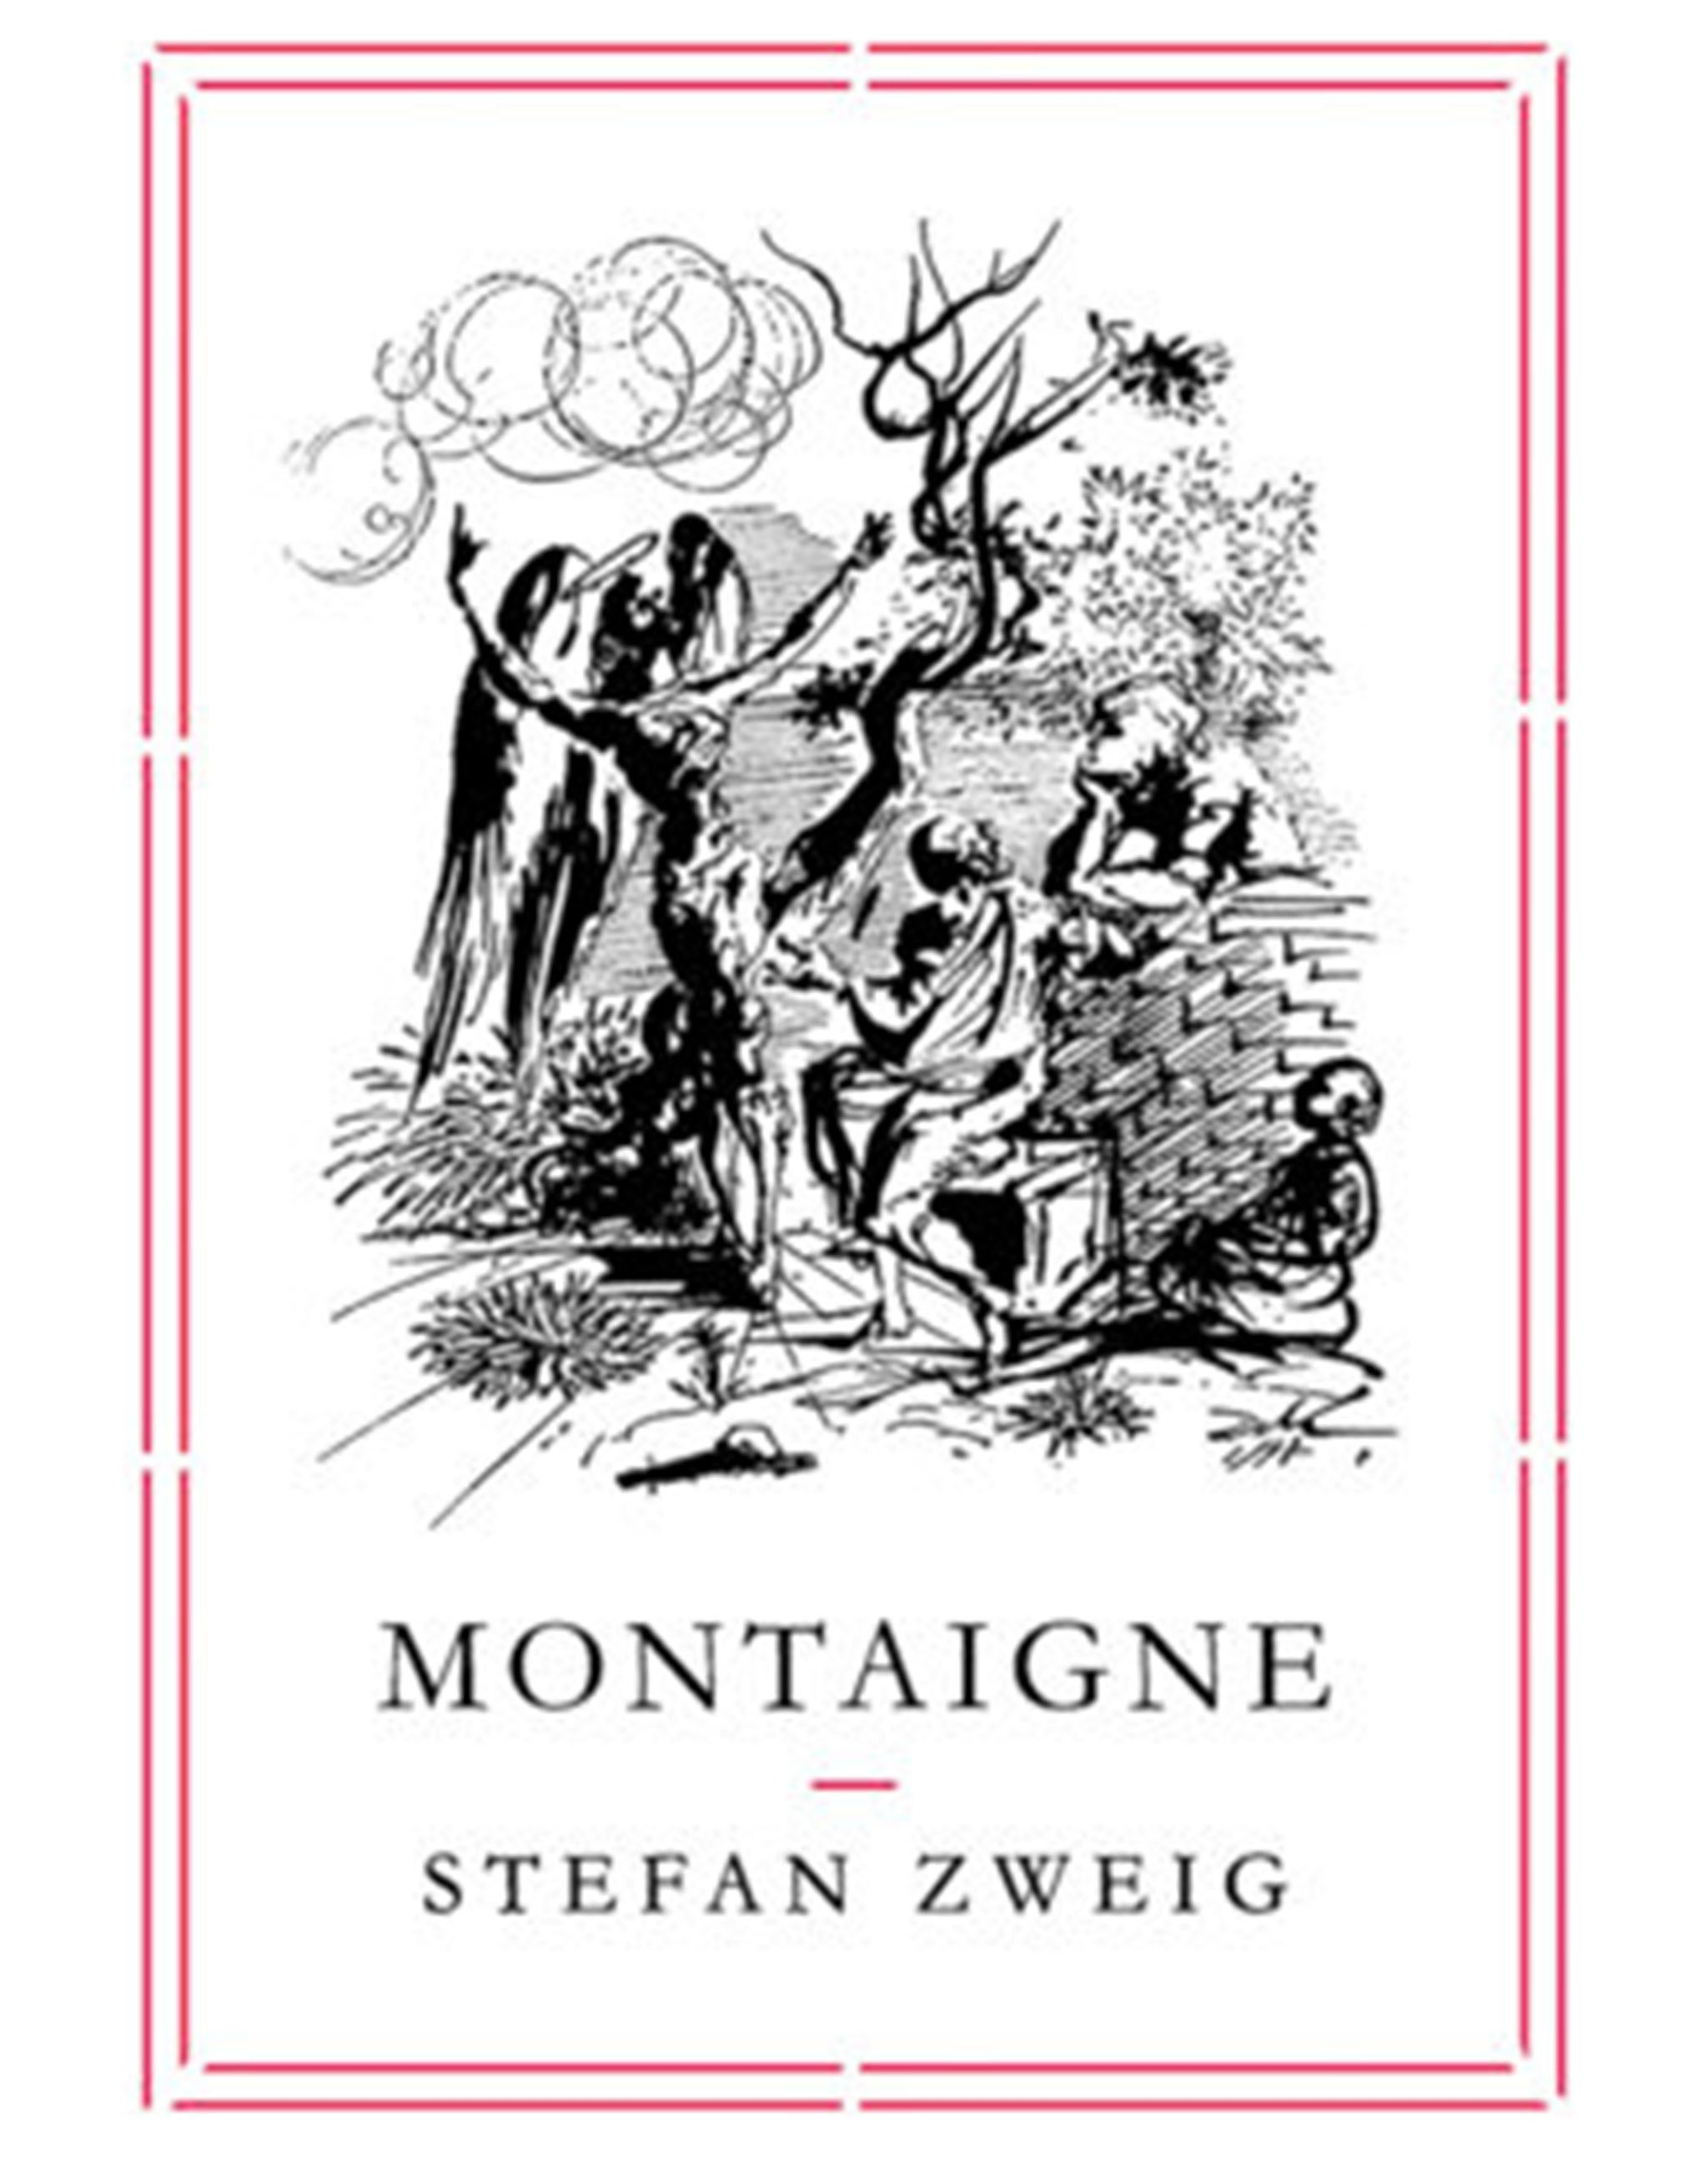 montaigne by stefan zweig book review an intriguing study montaigne by stefan zweig book review an intriguing study courtesy of a man who inspired hollywood the